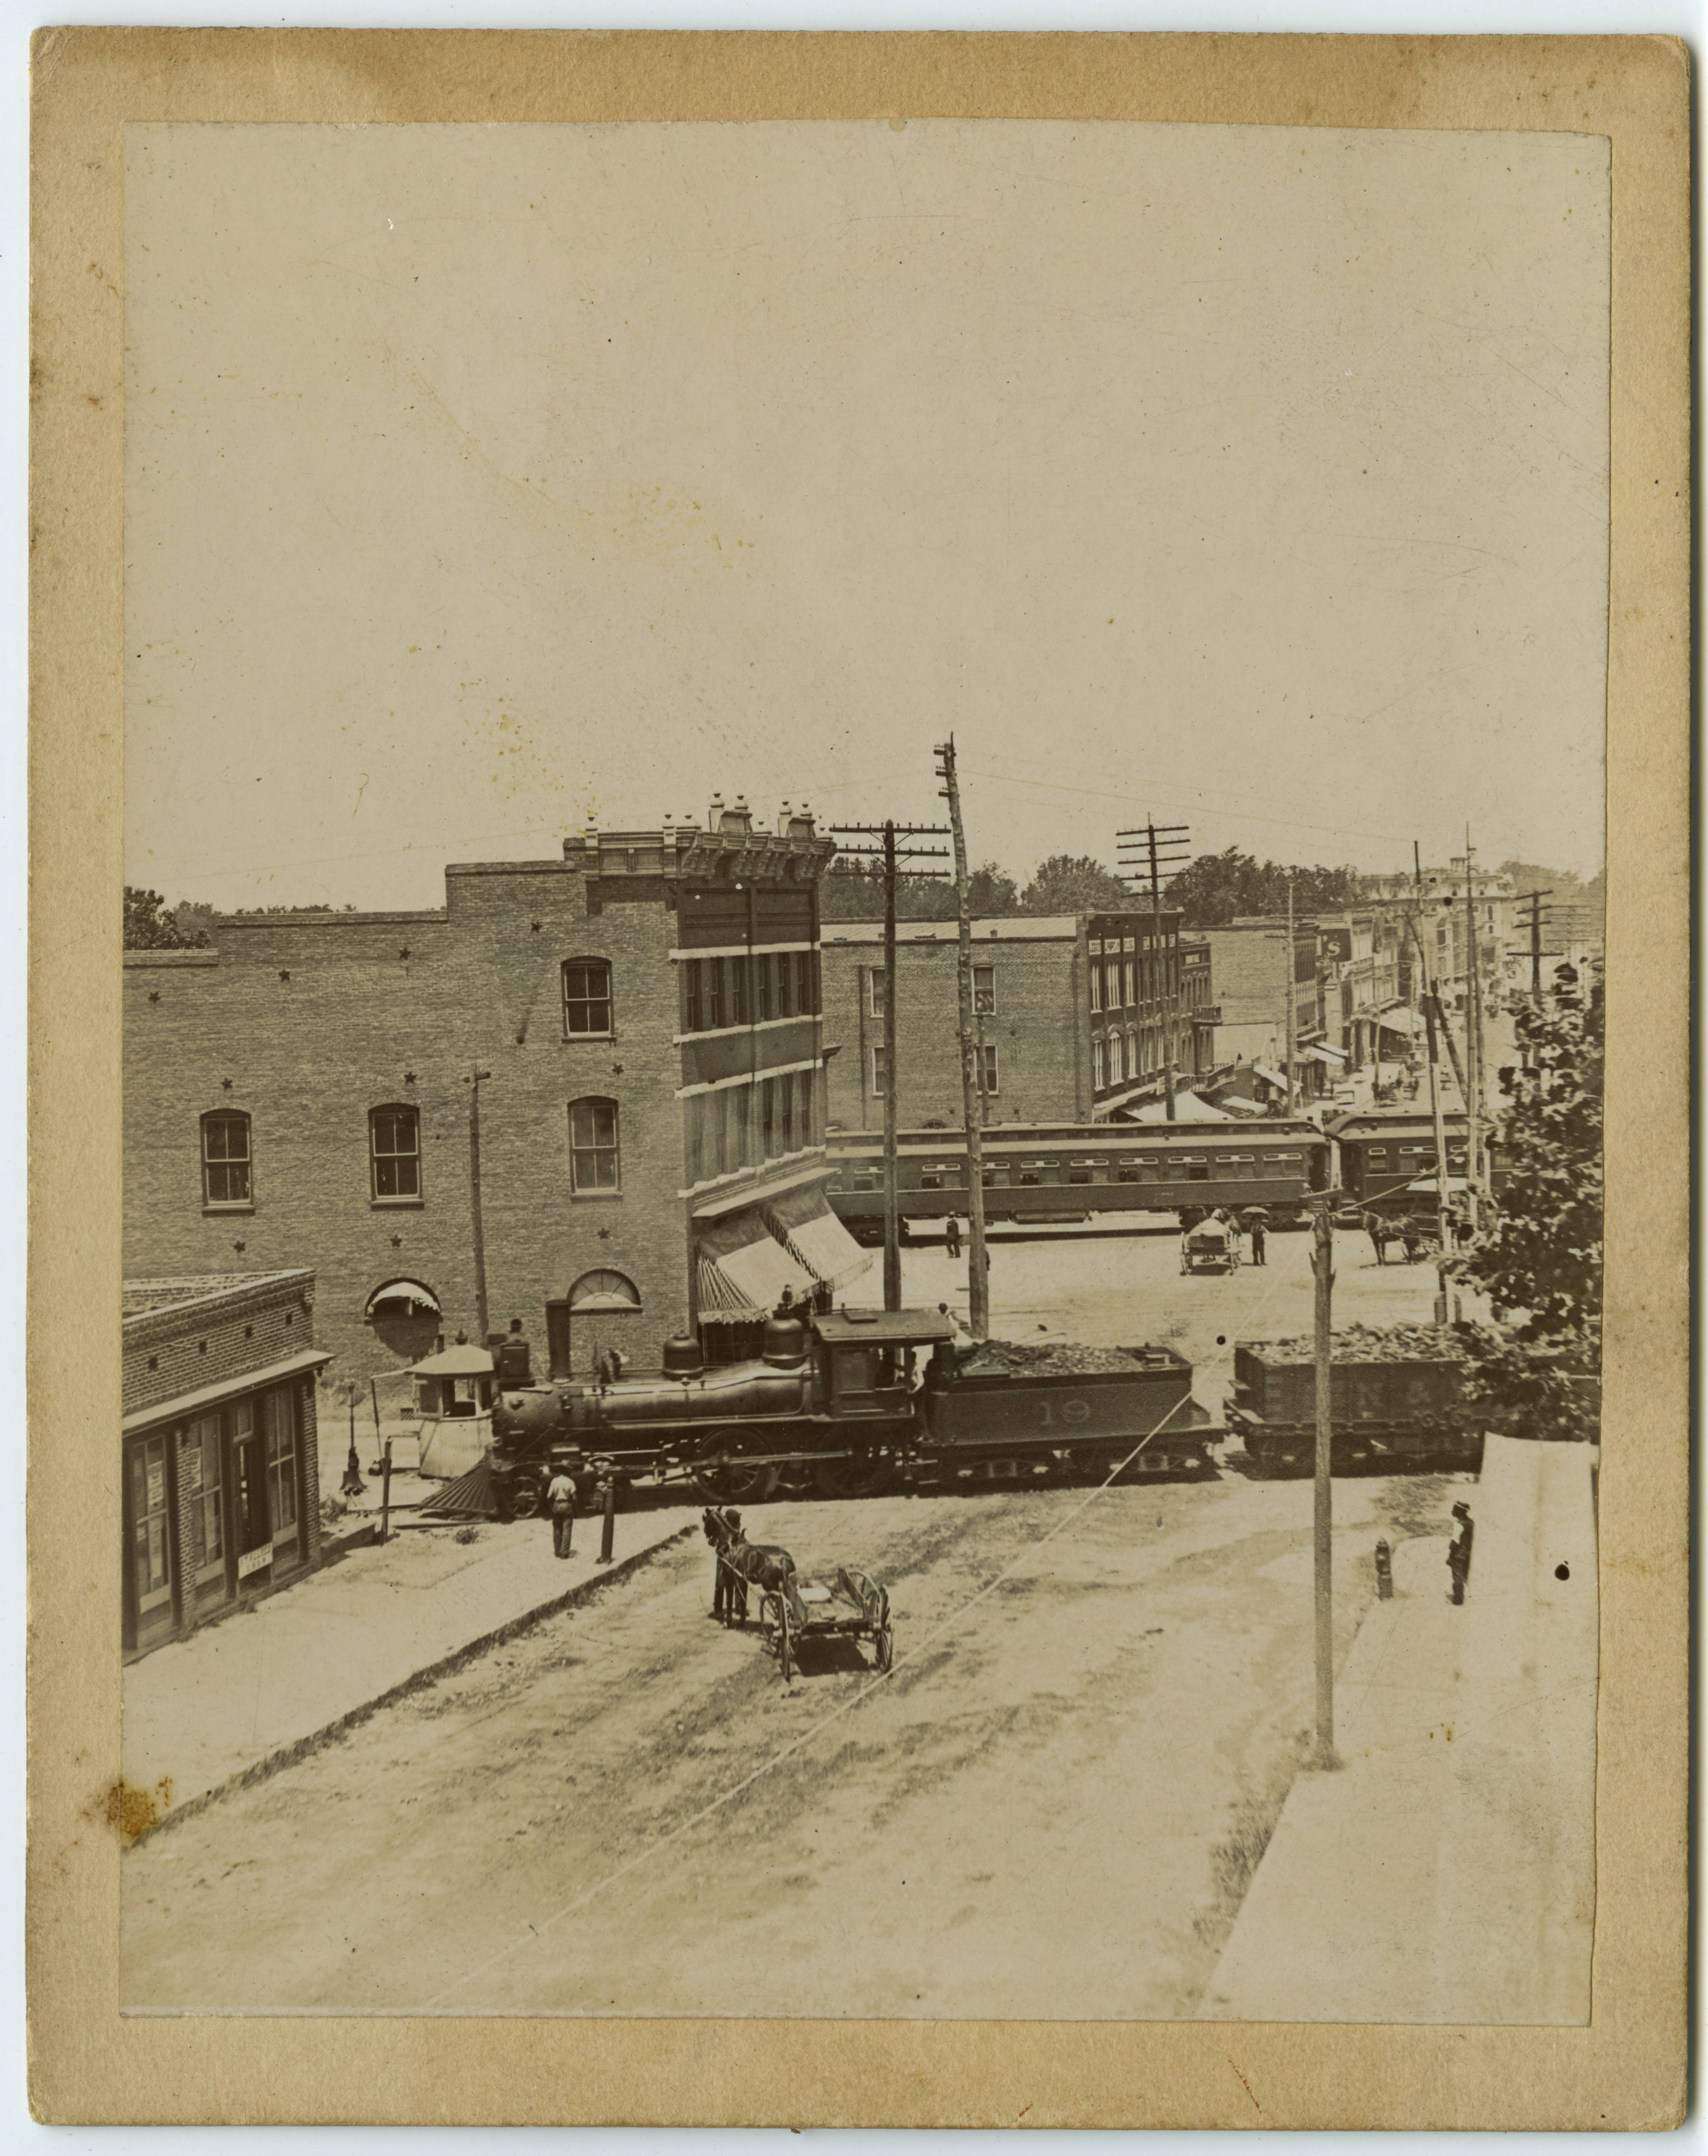 S. Elm St. railroad crossings, ca. 1900. Building slightly left of center is the Cascade Saloon.